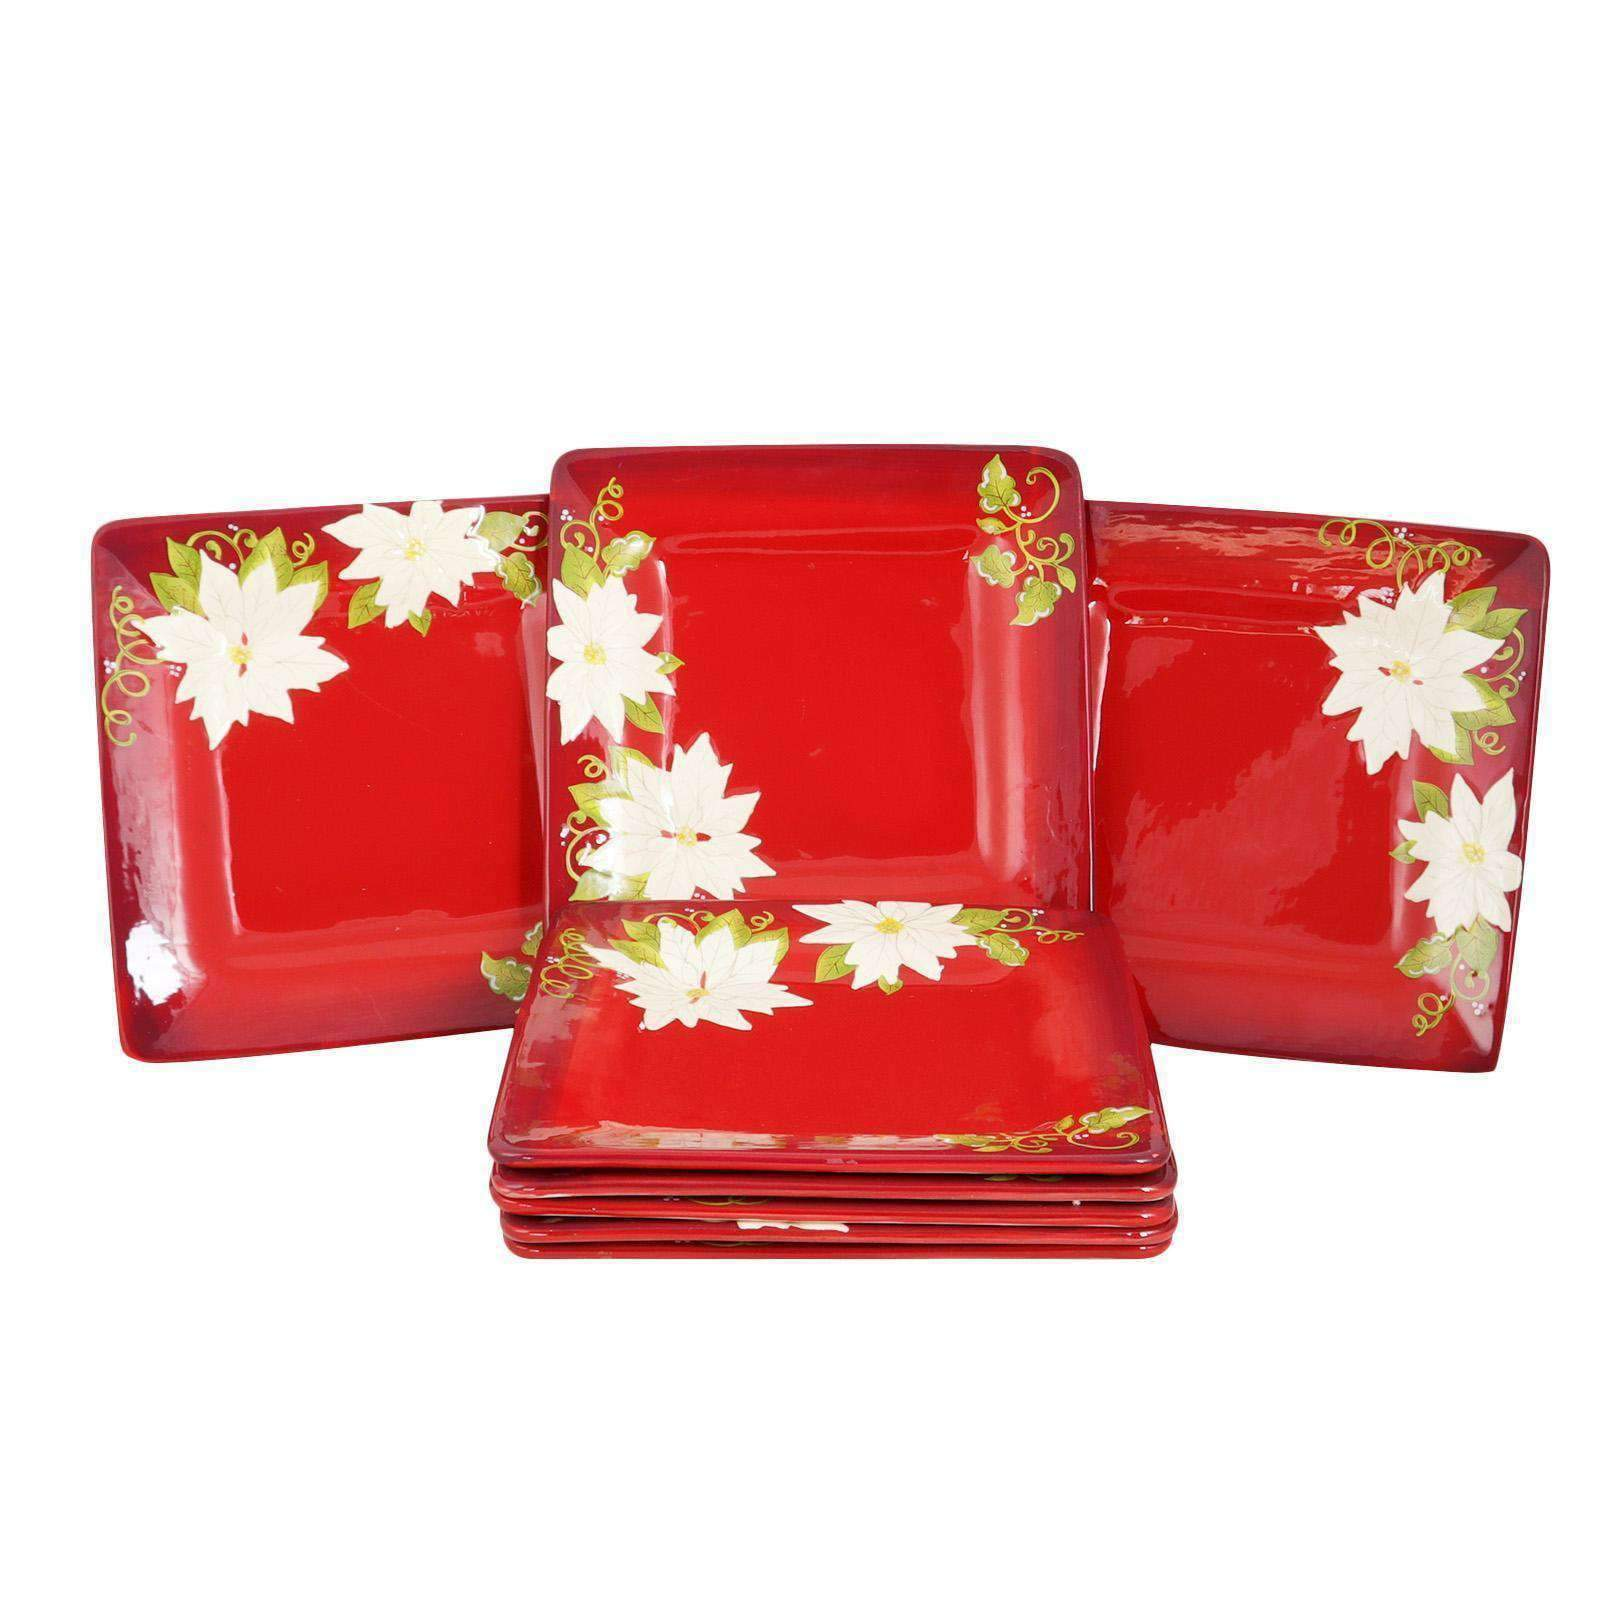 "LaurieGates Tableware Laurie Gates Pleasant Poinsettia 11.25"" Dinner Plate Set, Set of 8"